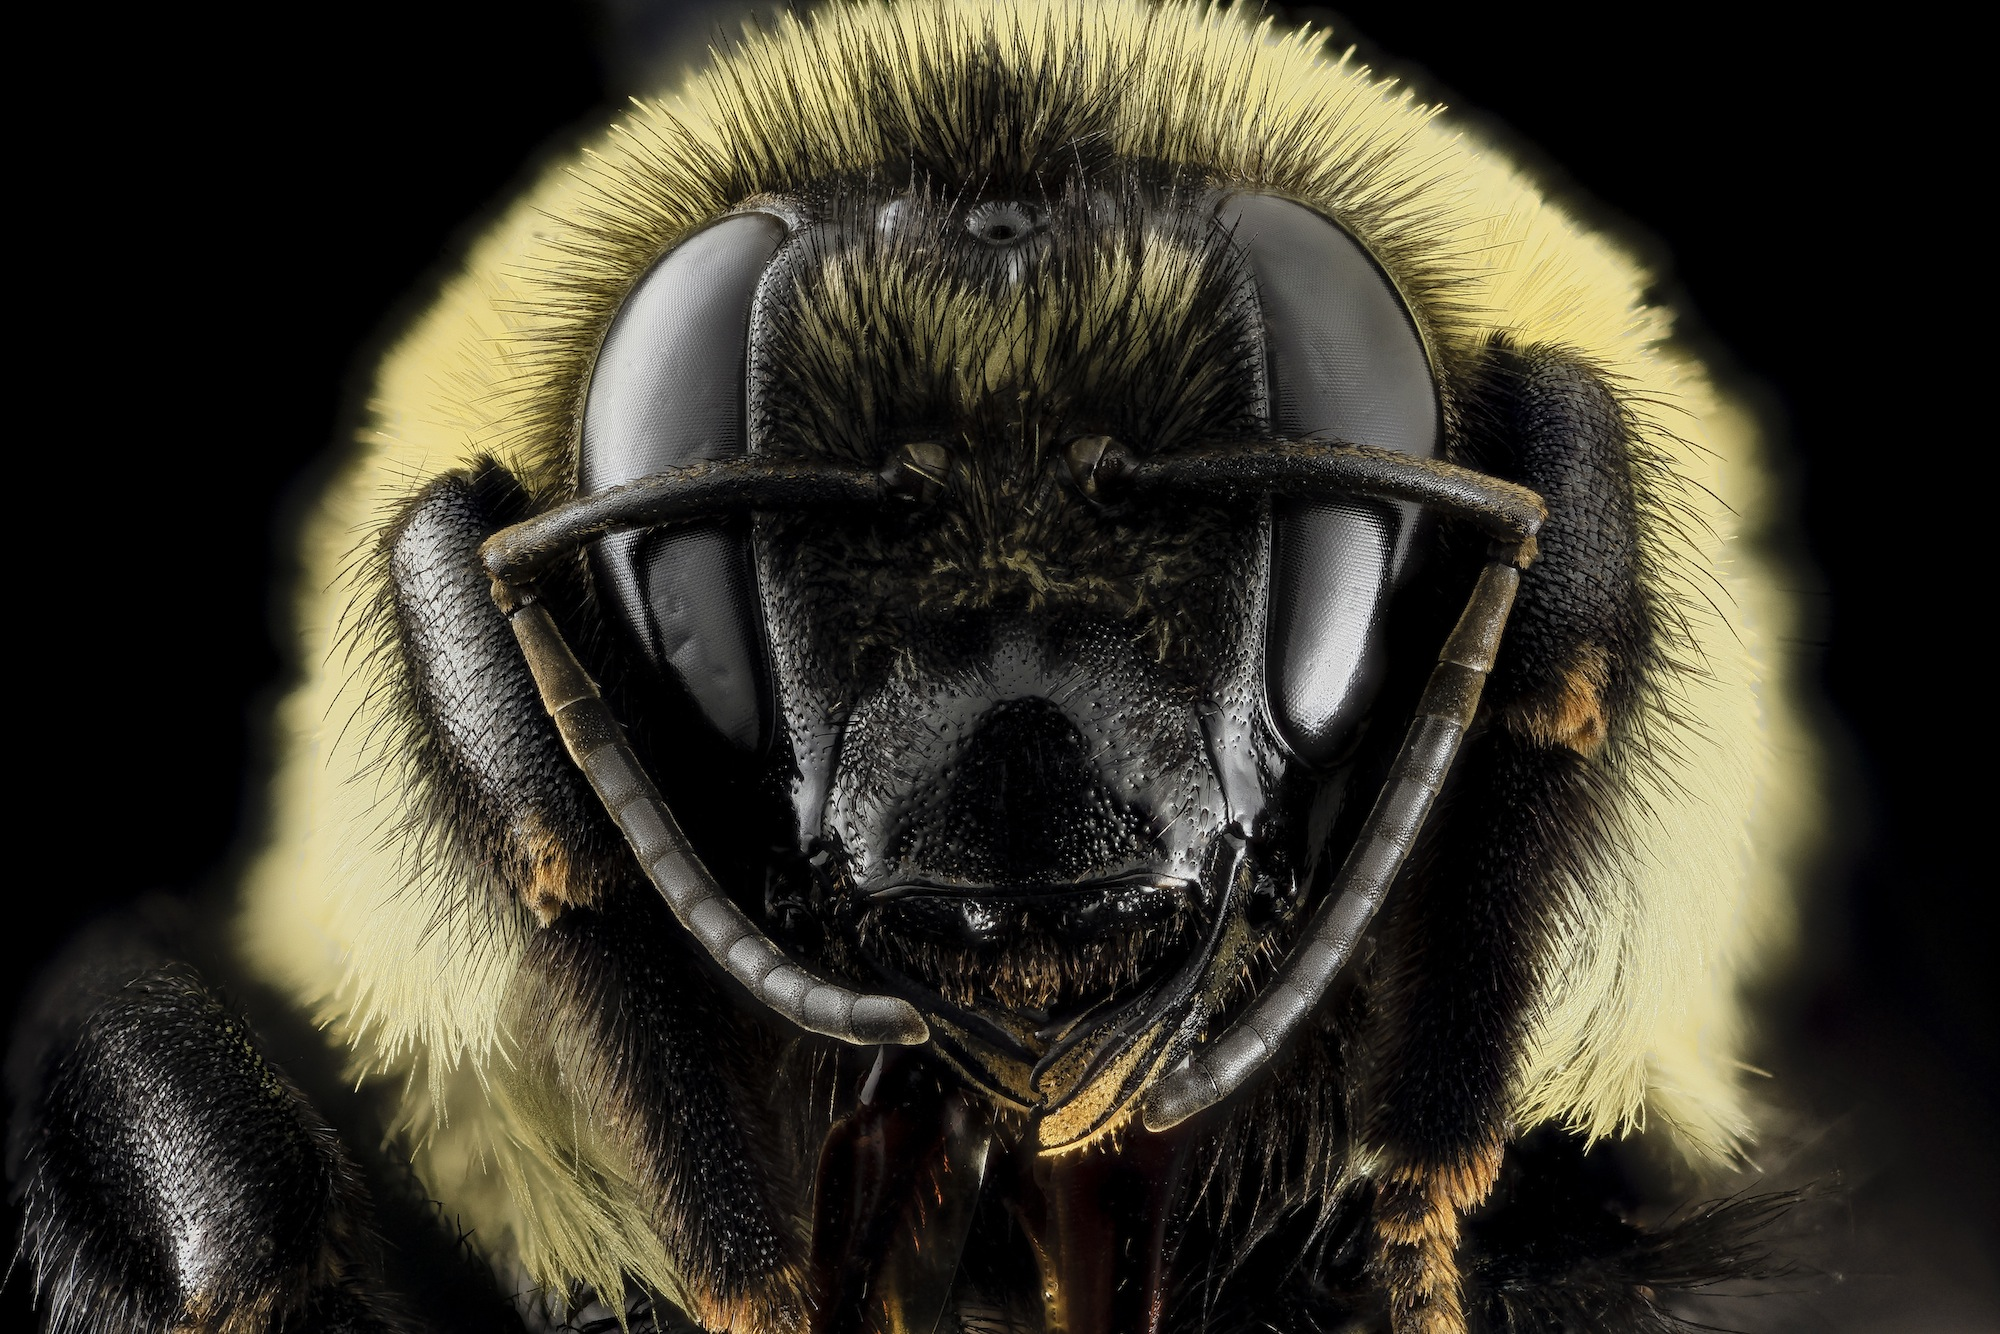 Close image of a honeybee